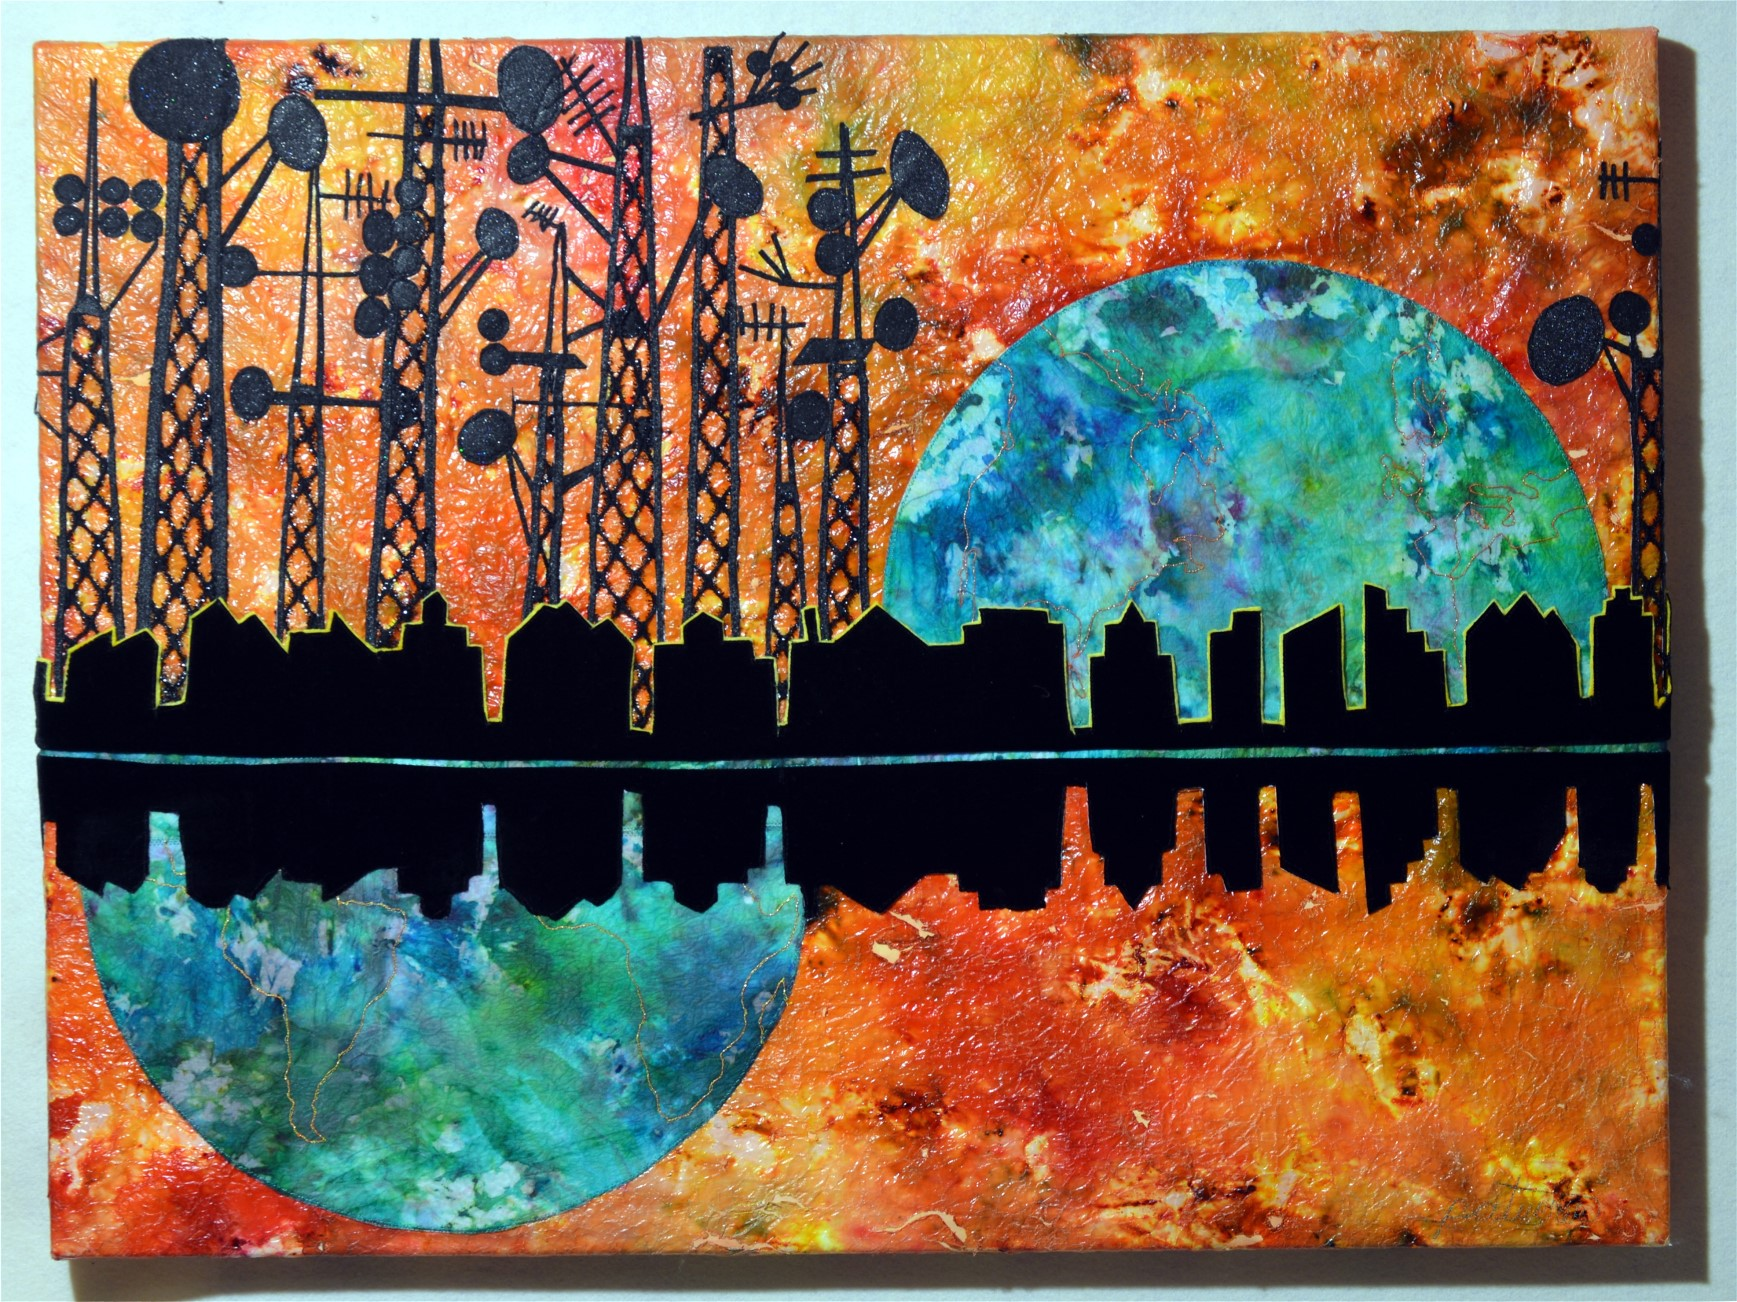 Cellular Skyline by Patricia Turner